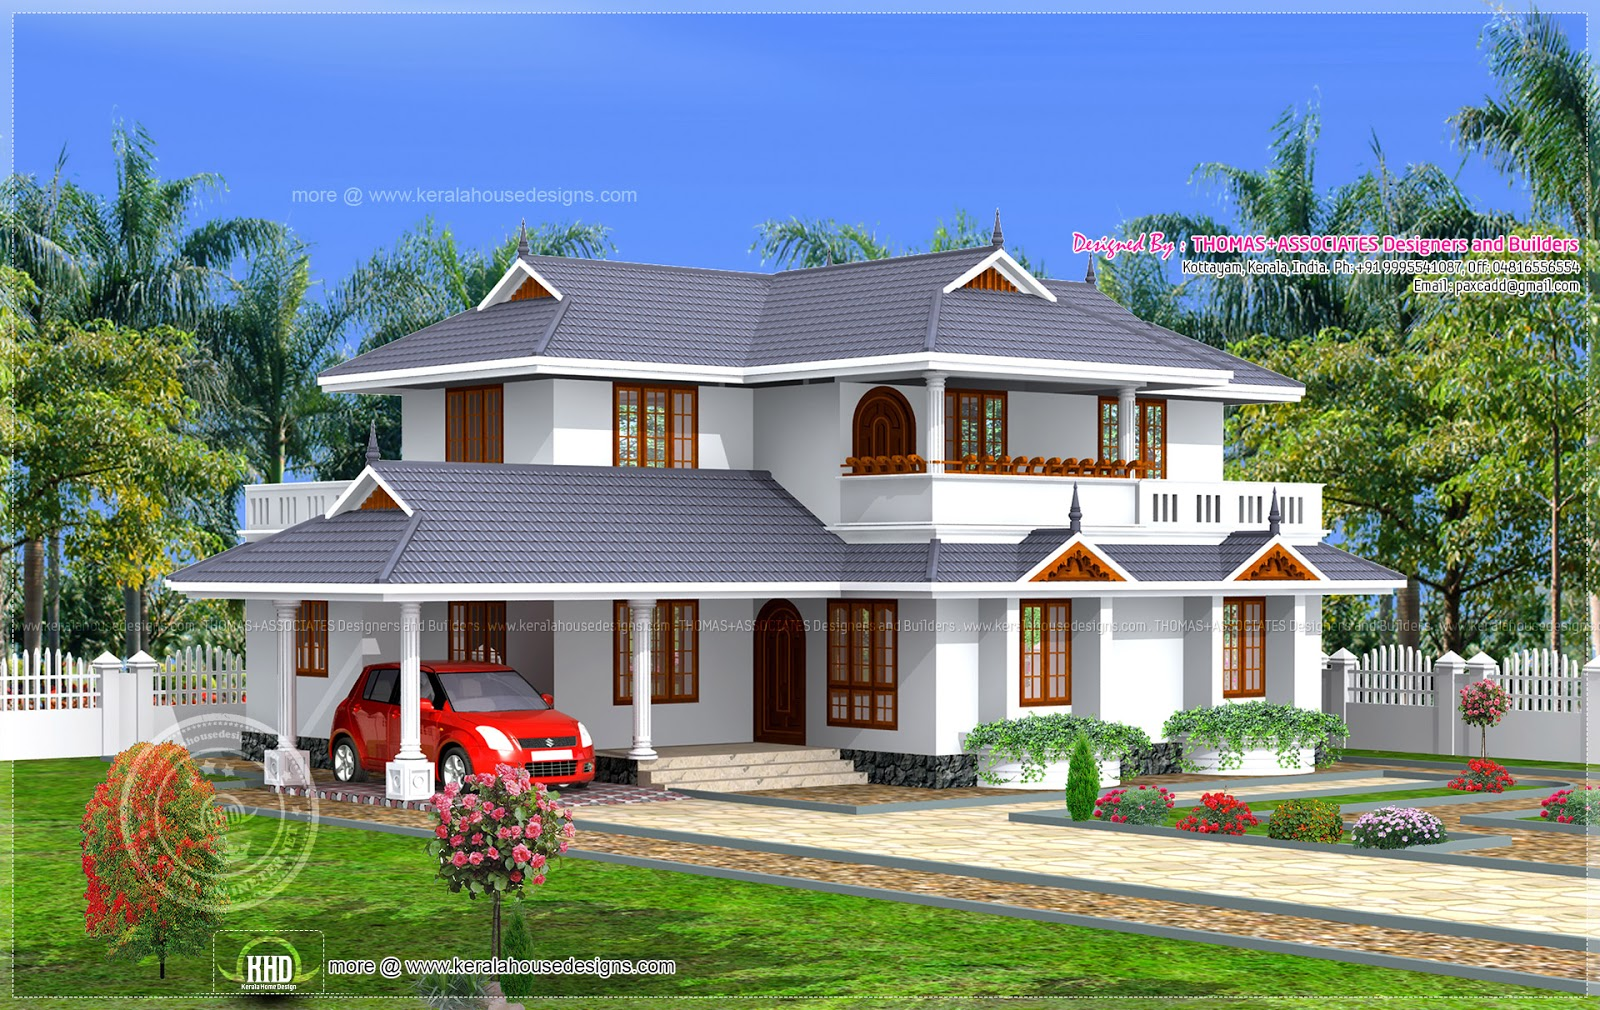 New model house kerala joy studio design gallery best for Kerala new house models